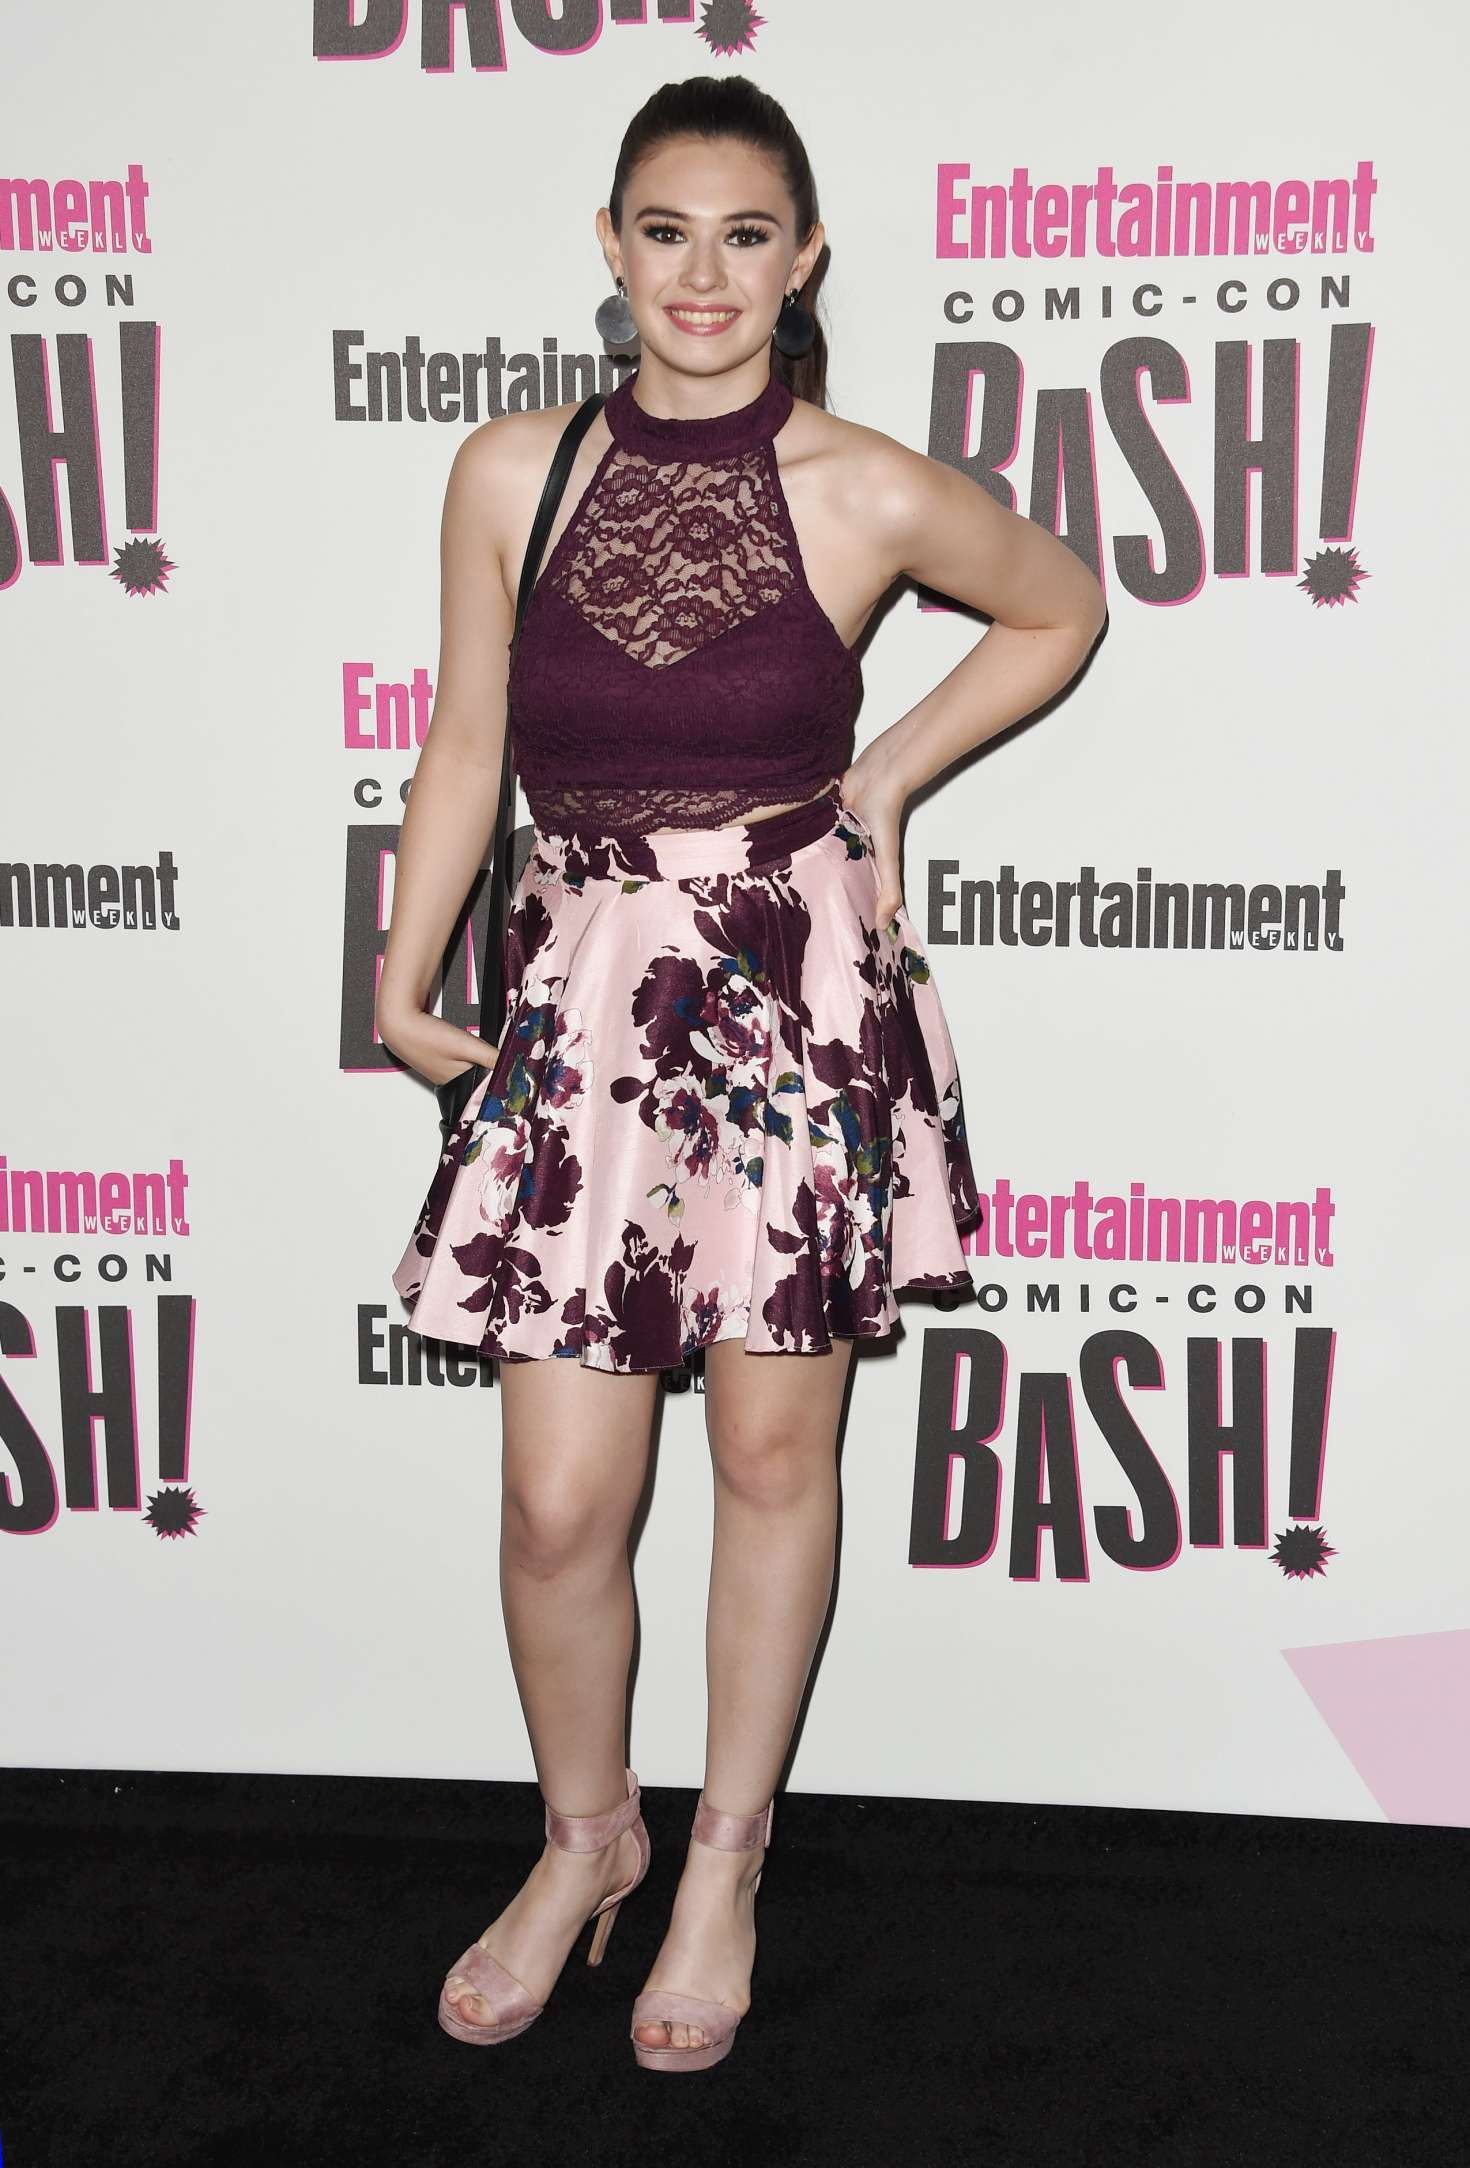 Image Result For Nicole Maines